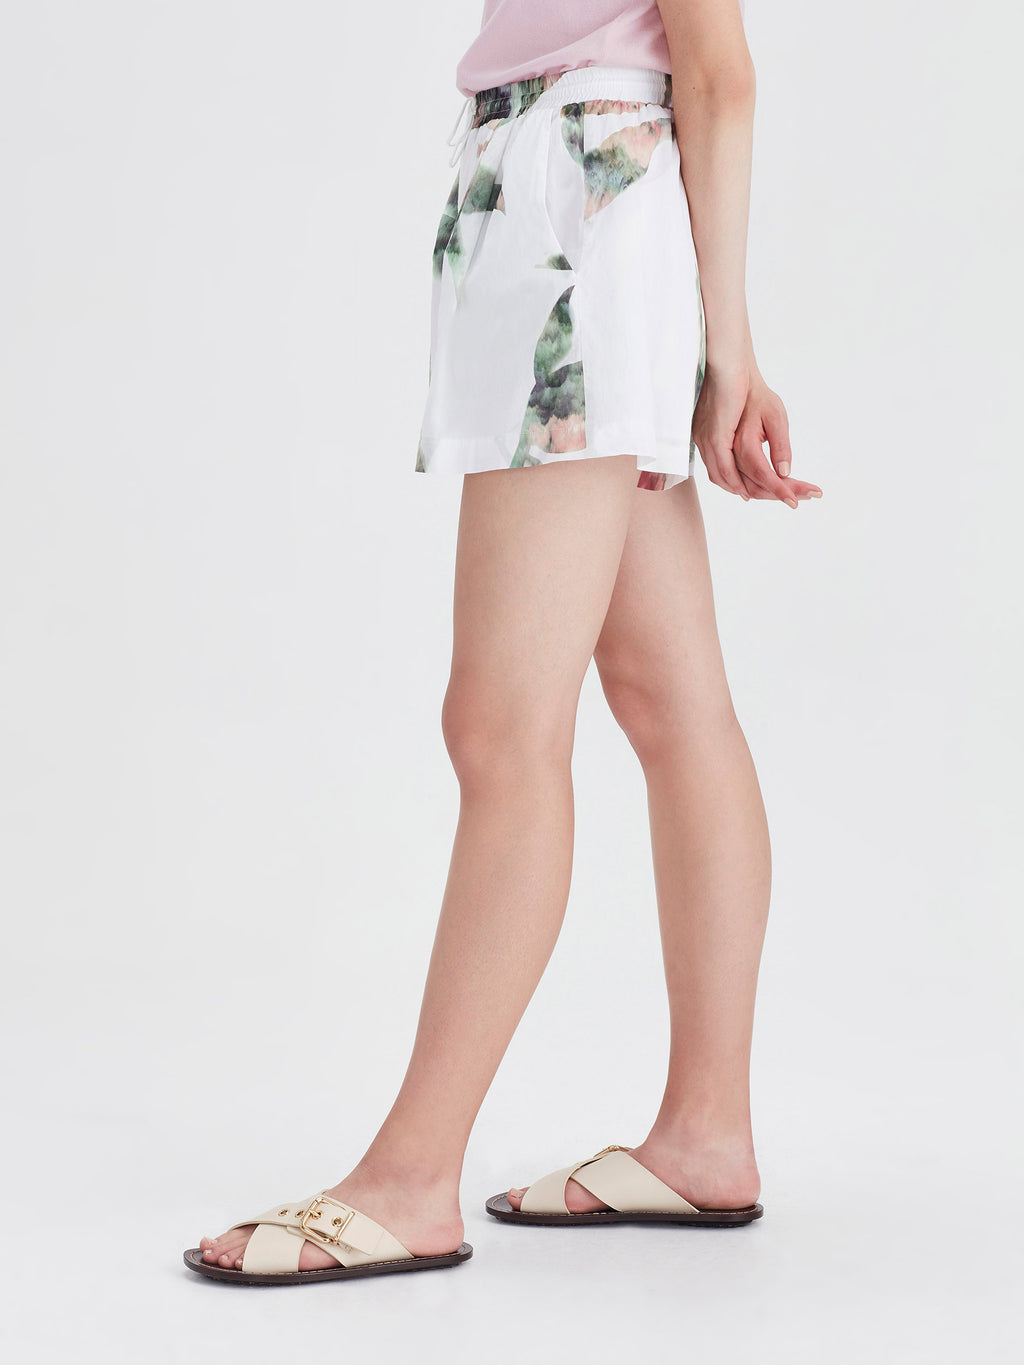 Finch Shorts (Lotus Collage Cotton) White Lotus